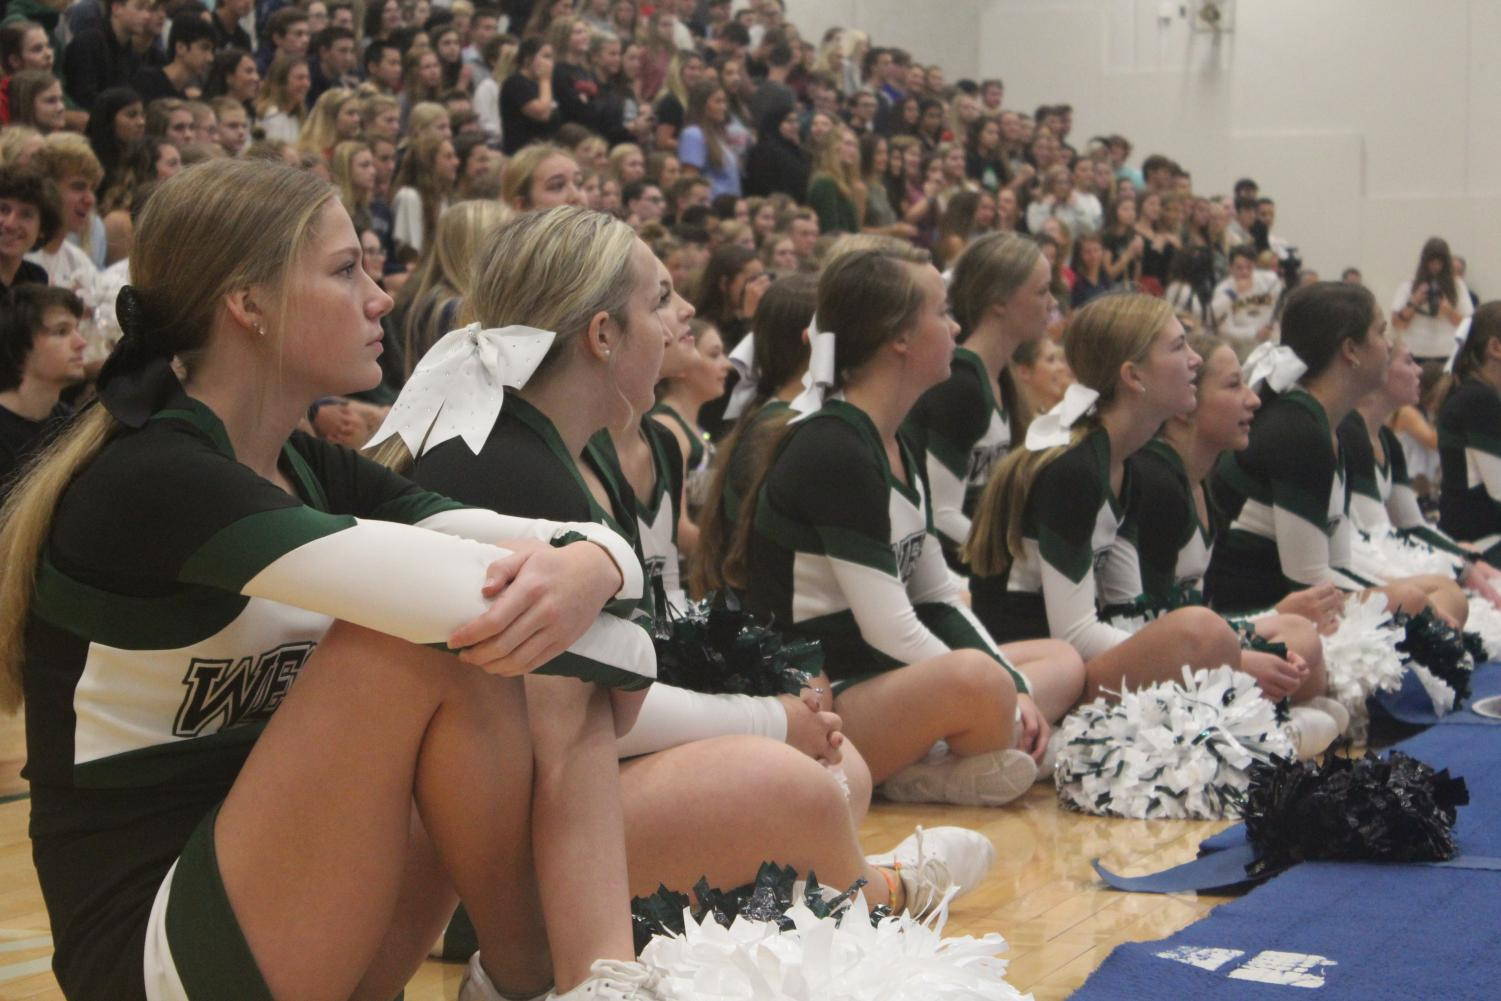 Cheerleaders+wait+on+the+sidelines.